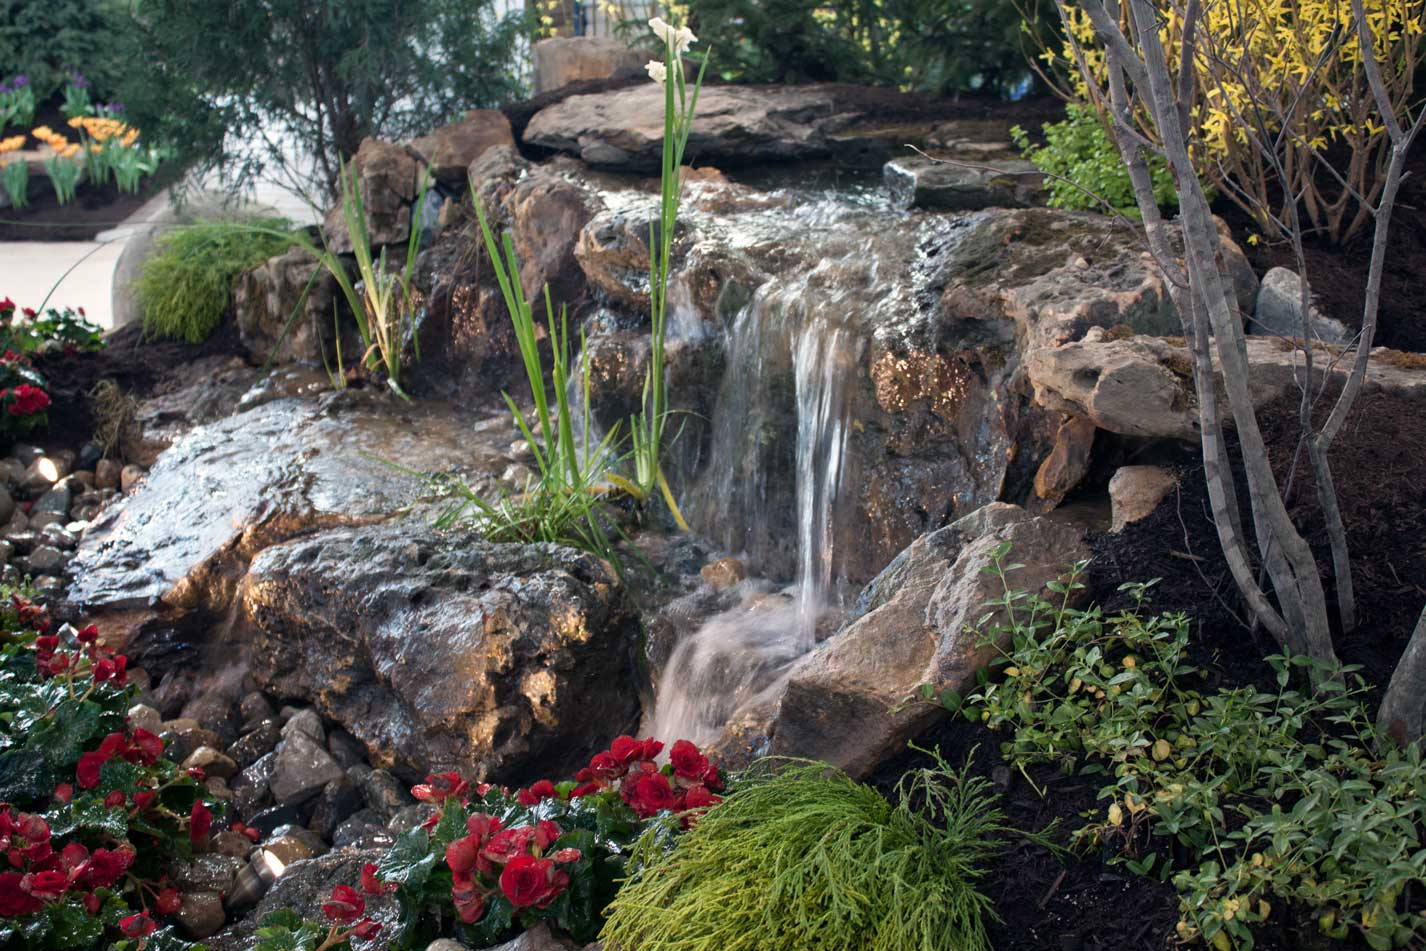 Waterfall with Indian Creek Stone